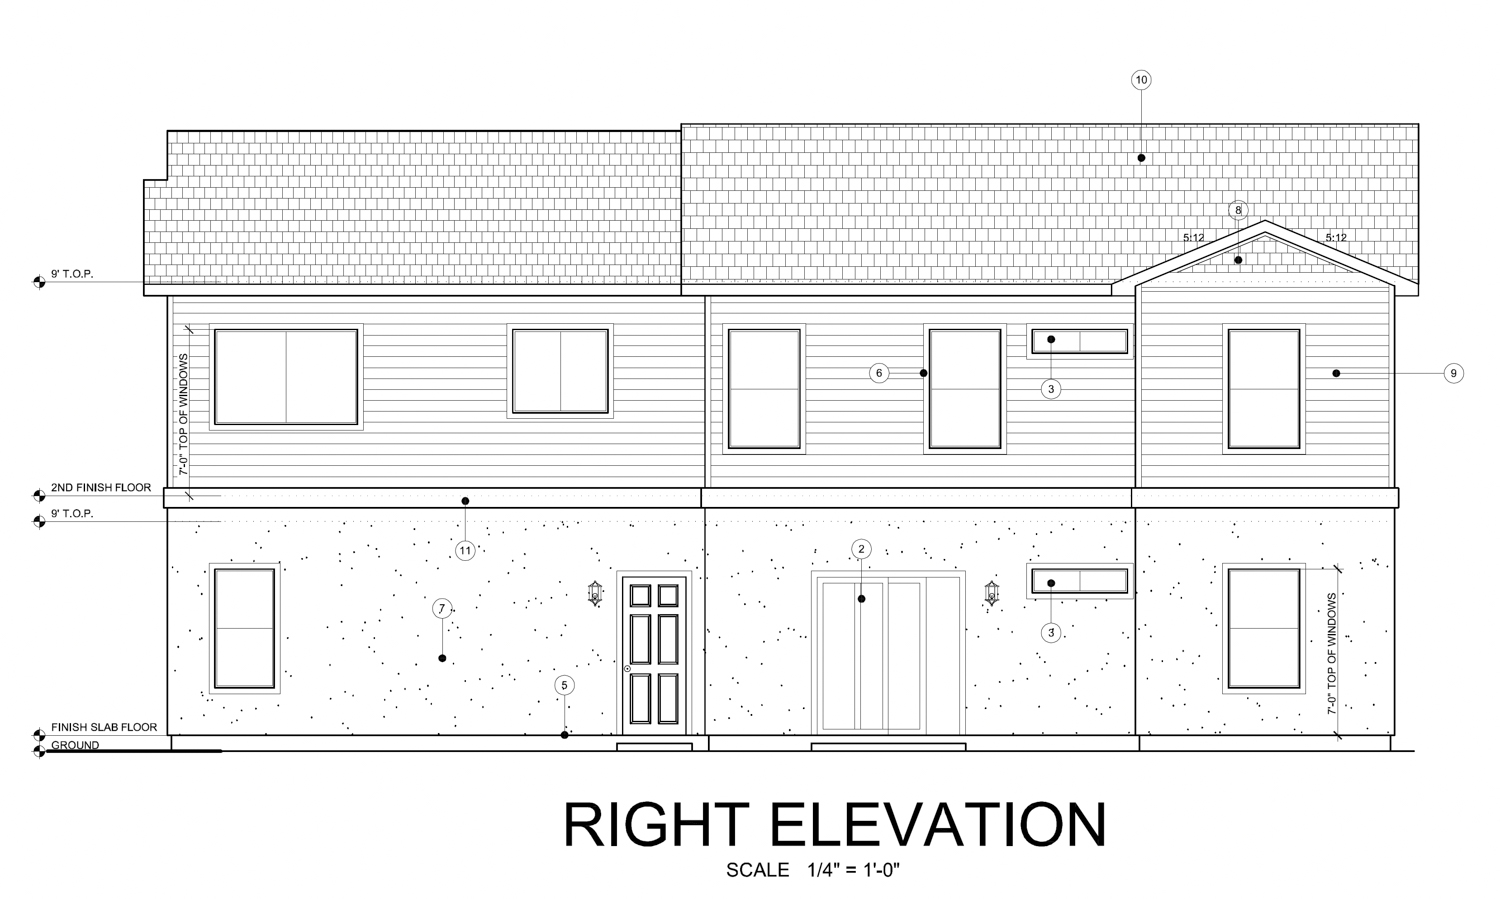 3950 Broadway right elevation, design by Fineline Drafting